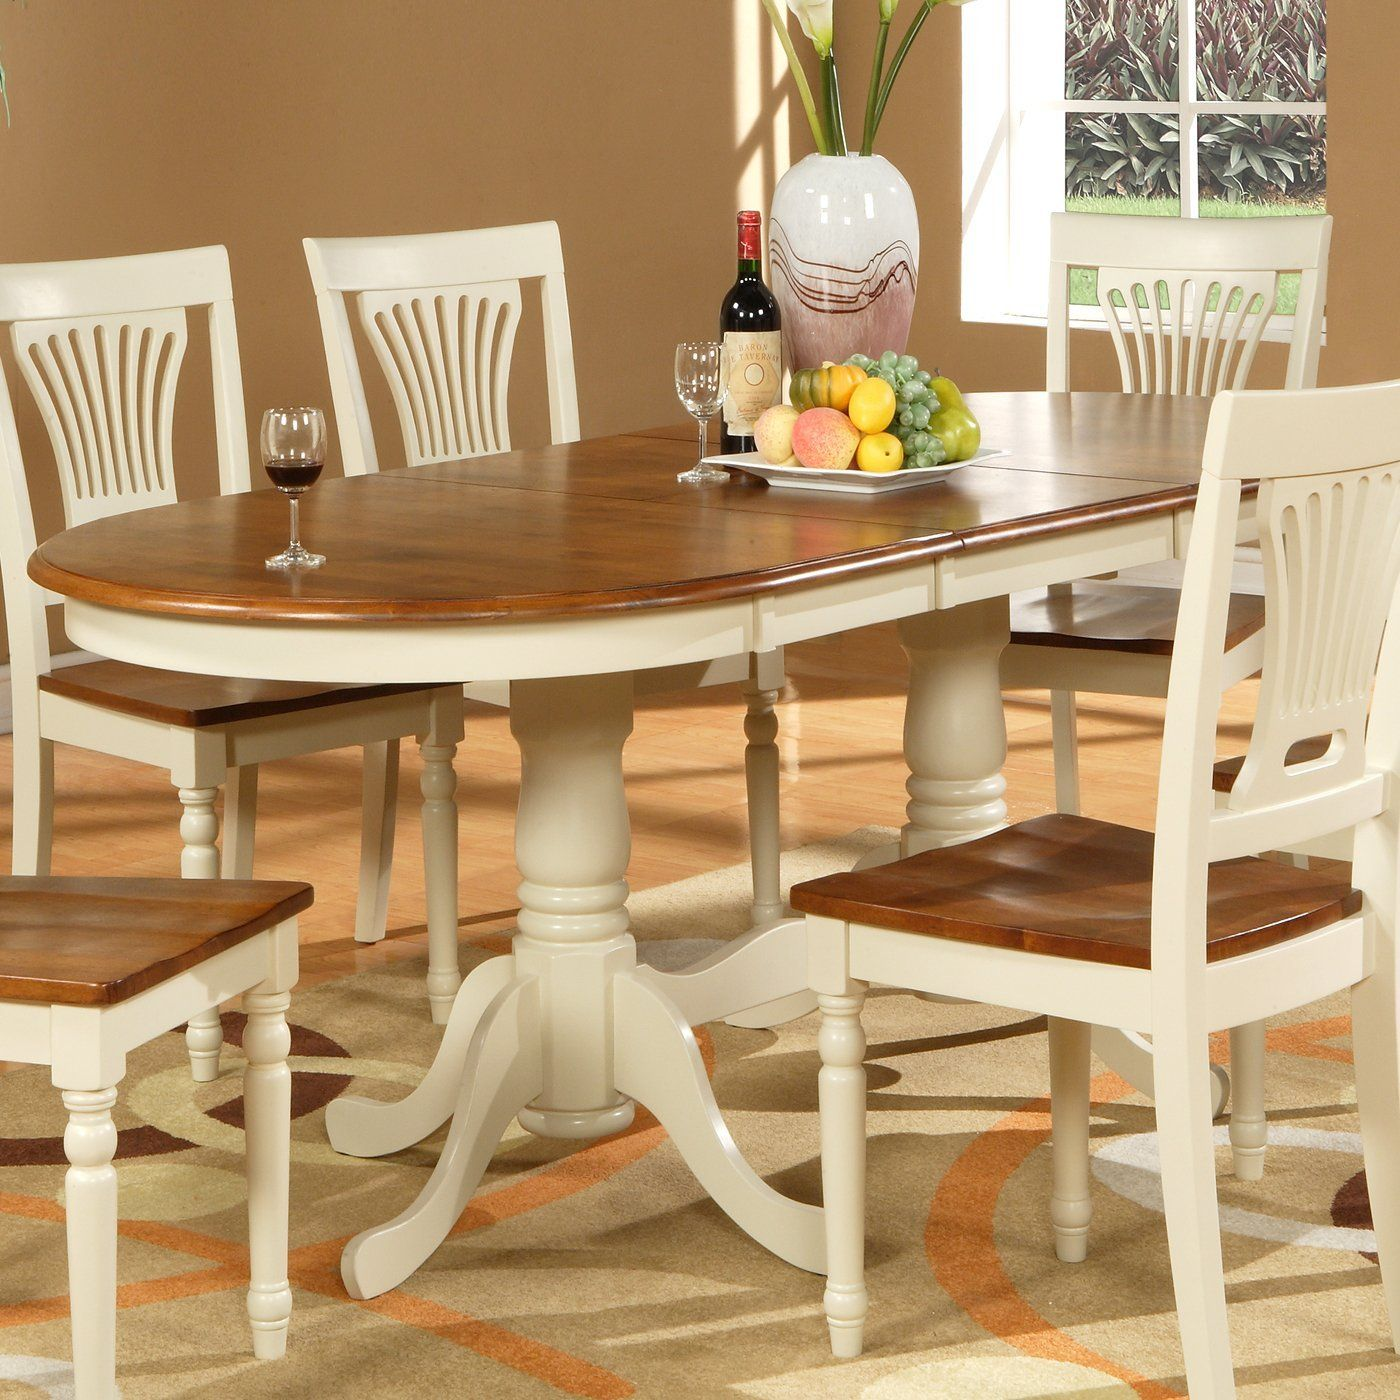 Wooden Imports Plv09 Plainville Dining Table